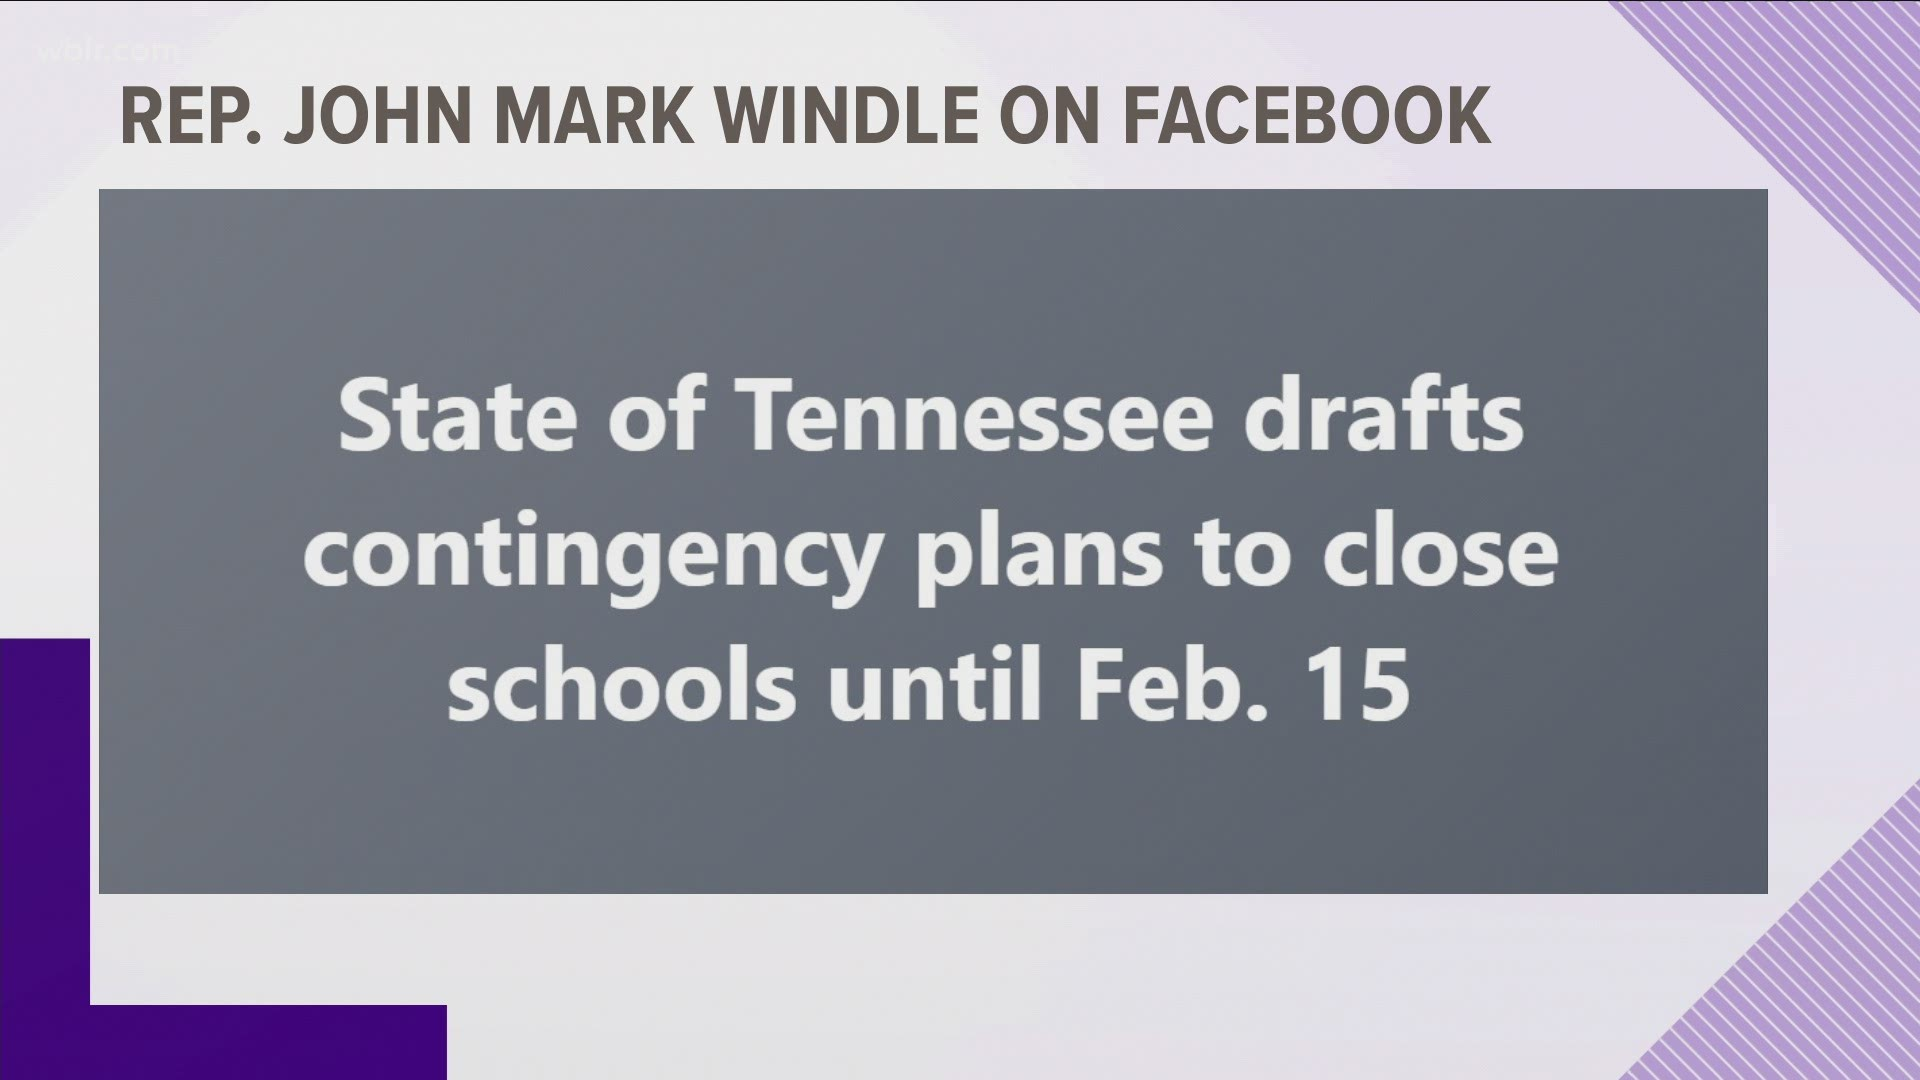 Knox County Schools Calendar 2022.What You Need To Know From Your East Tn School District For The Spring Semester Wbir Com